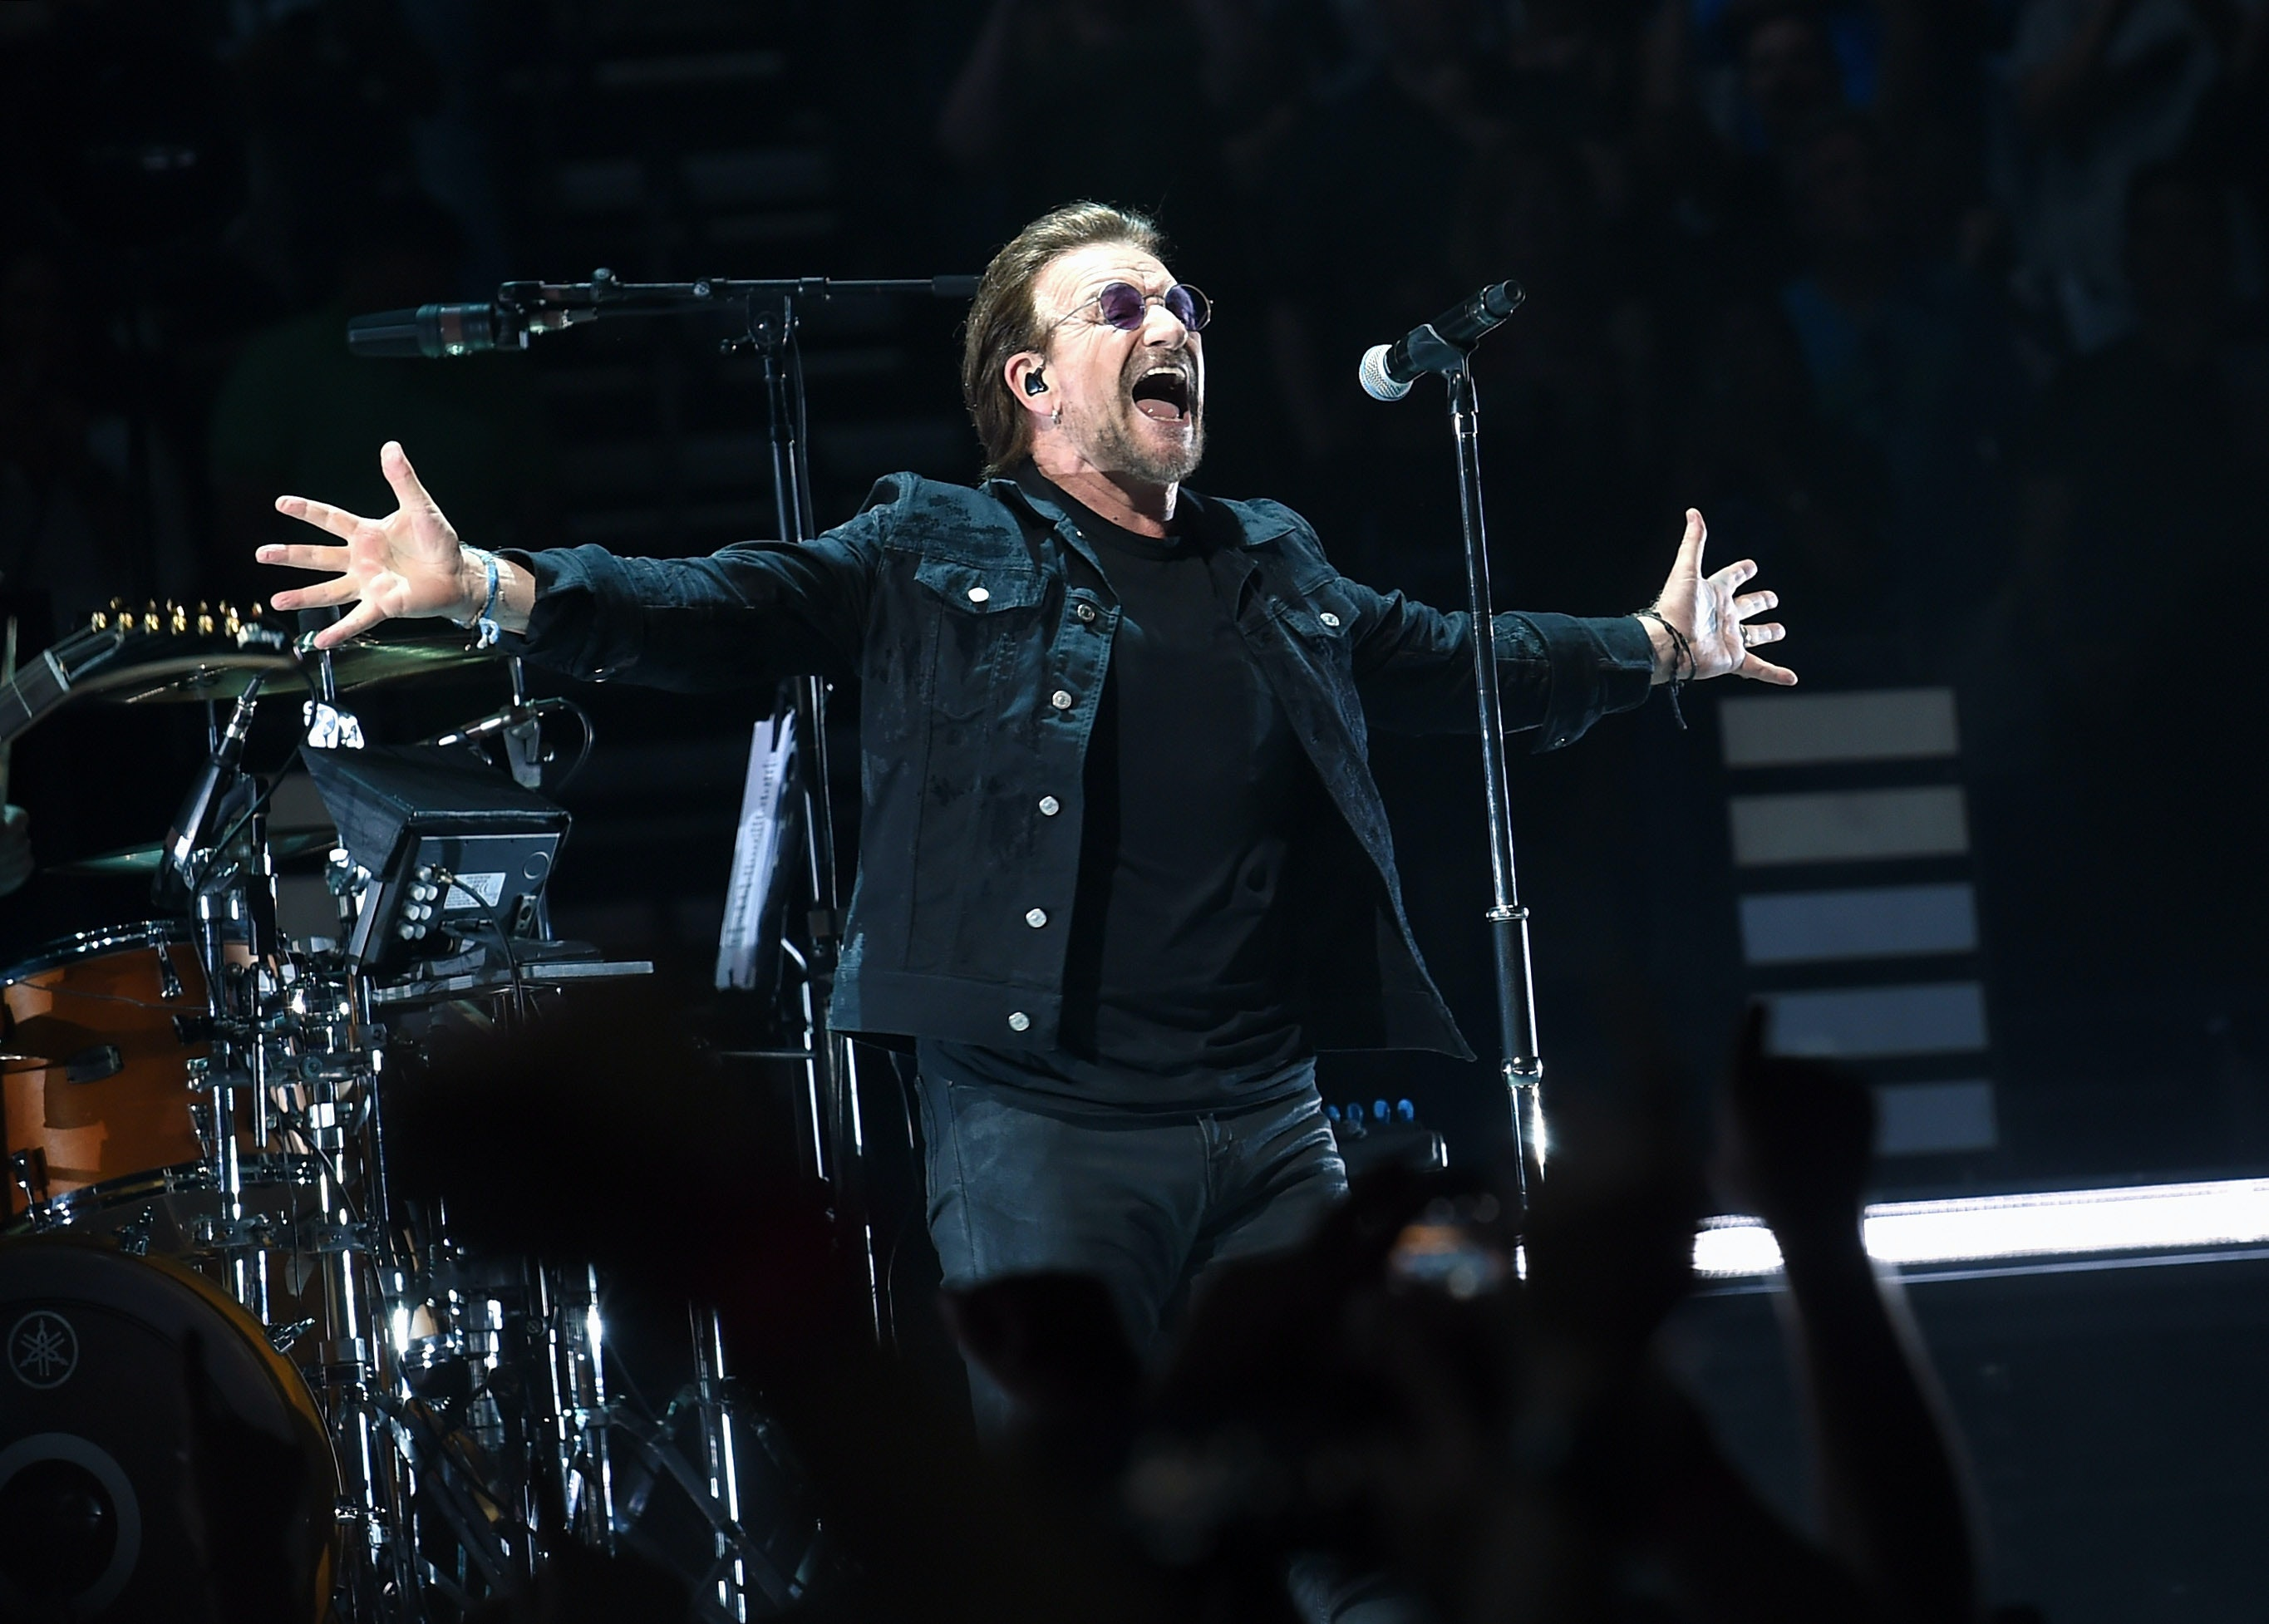 U2 2020 Tour.Will U2 Tour The Uk In 2019 The Band Have Been Together For